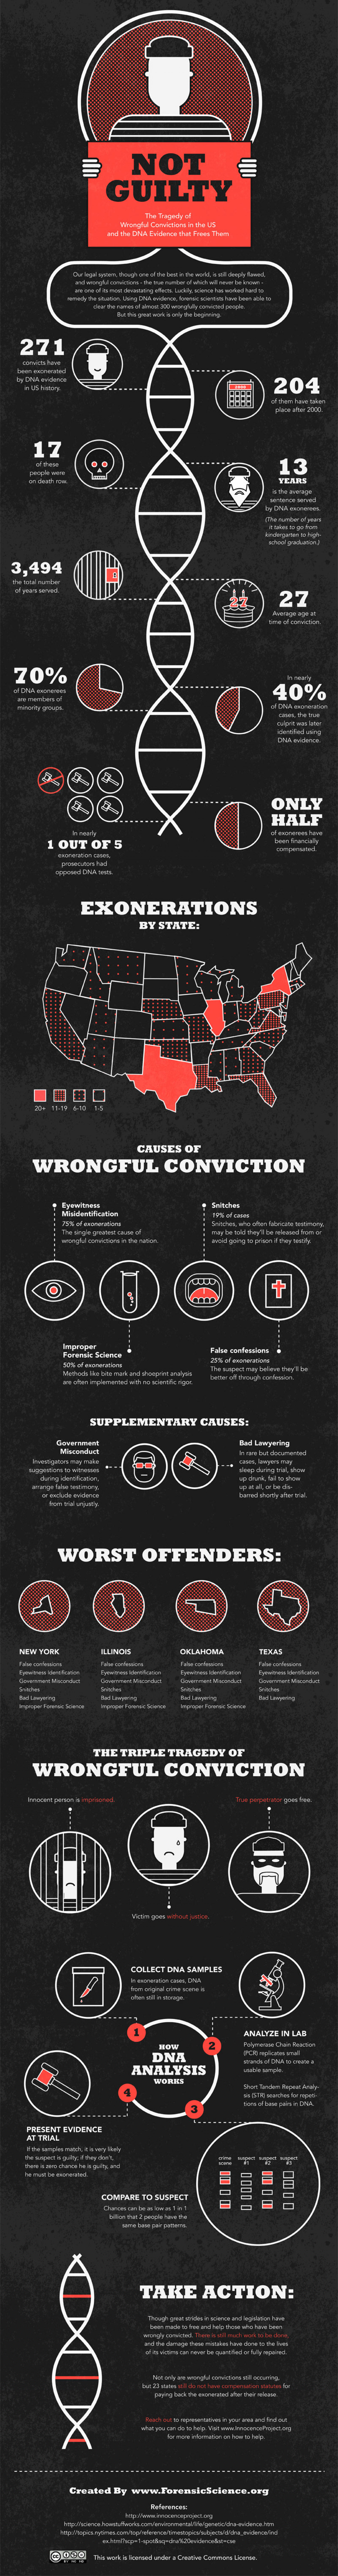 Not Guilty: The Tragedy of Wrongful Convictions in the US Infographic